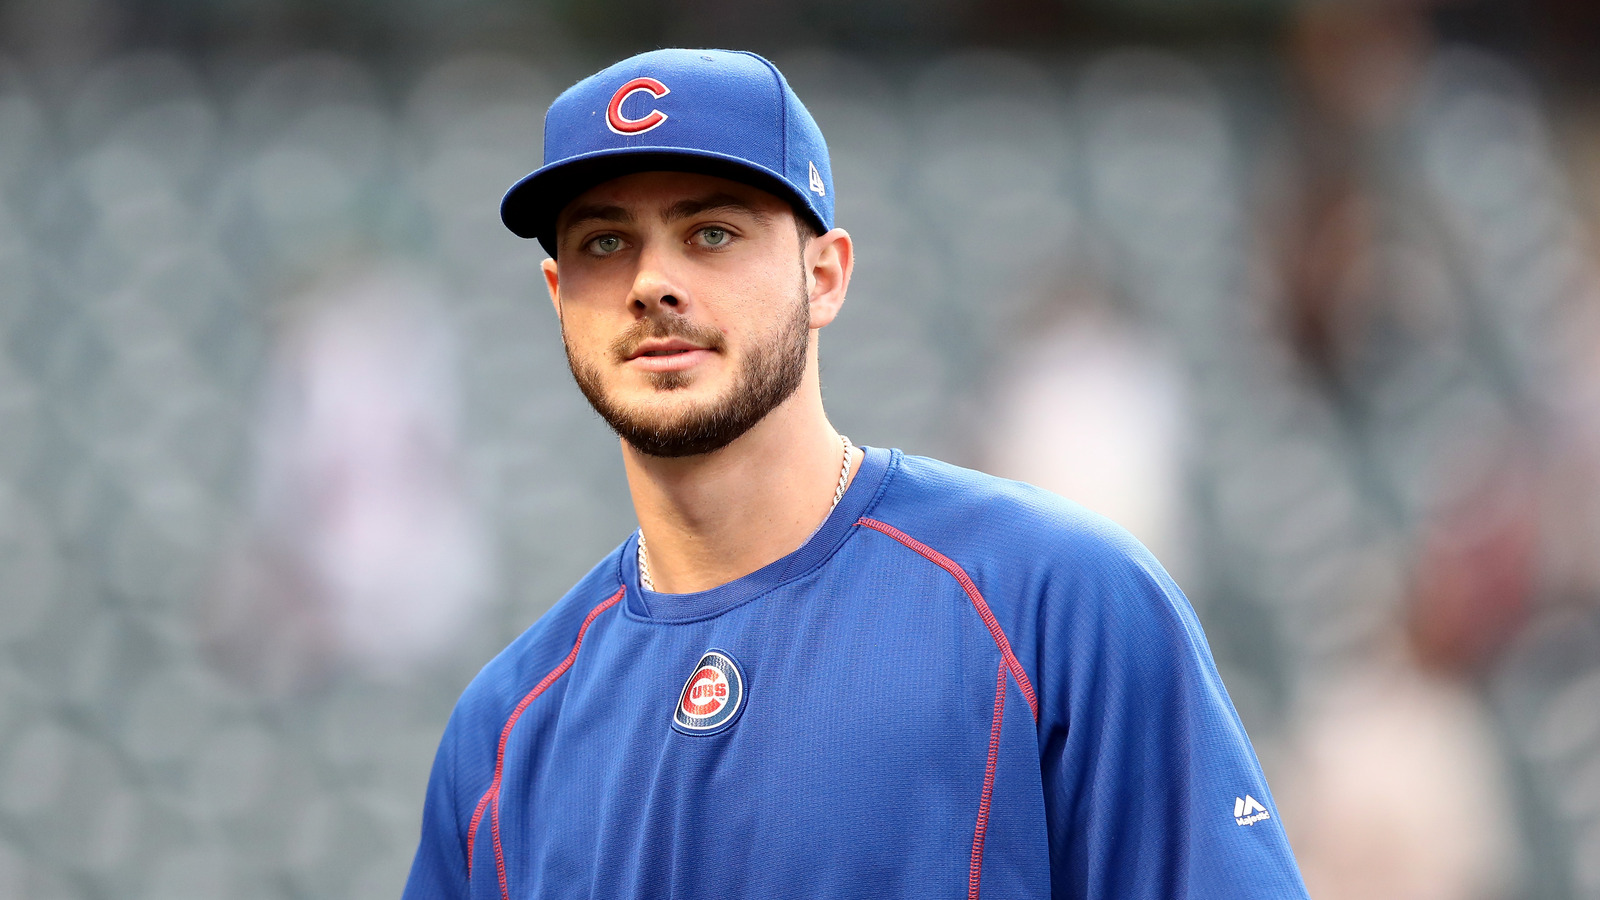 Kris Bryant can become the next Derek Jeter u2014 and more Yardbarker com